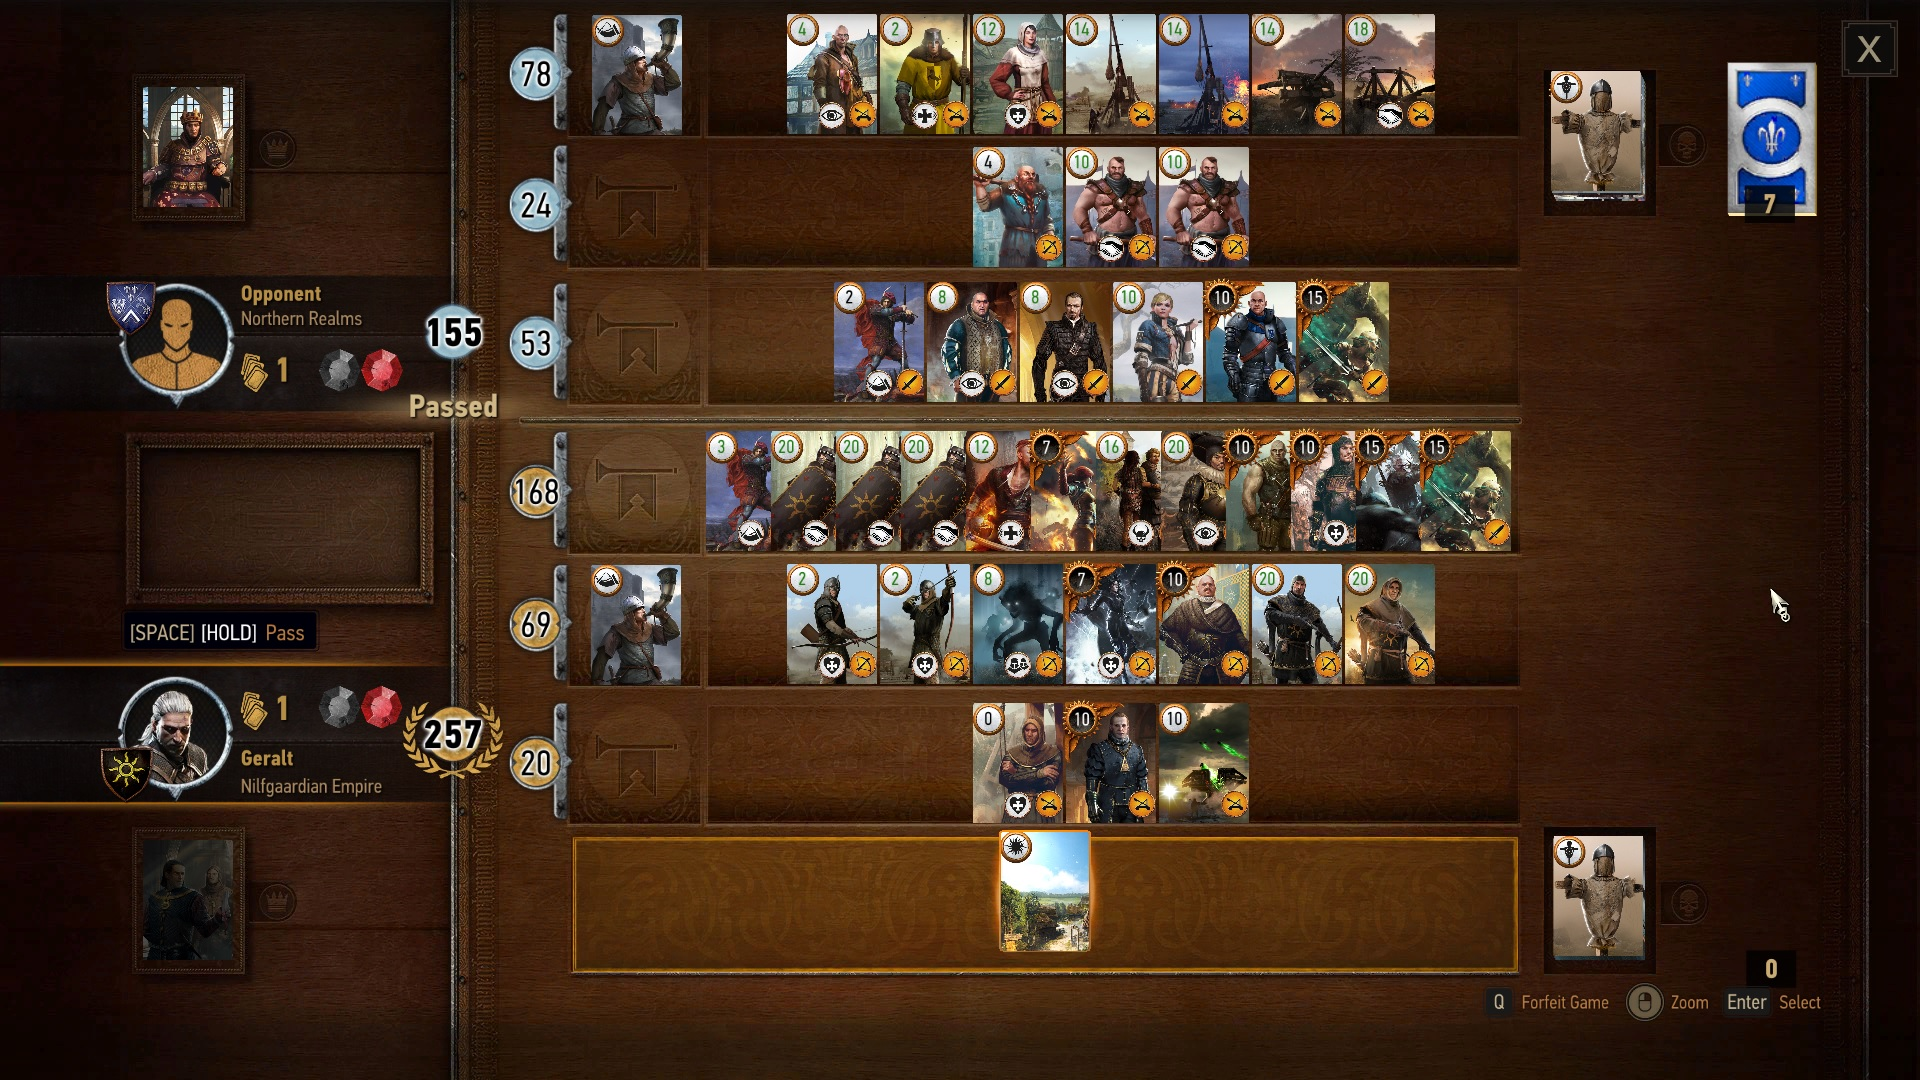 Does anyone here play Gwent?